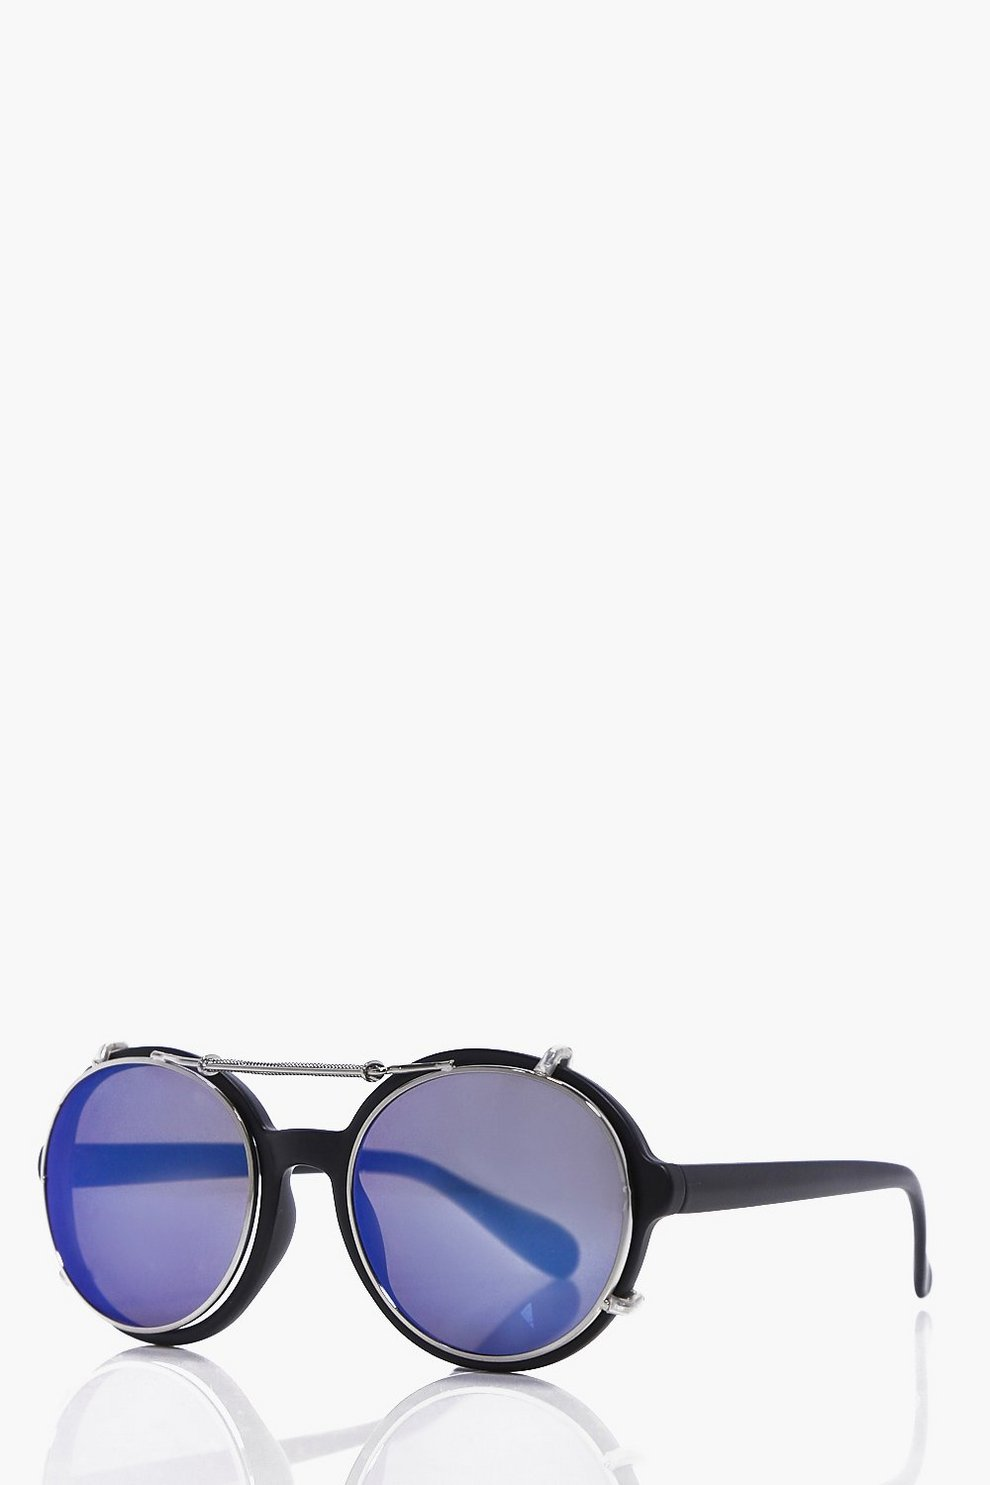 Wire Frame Round Lens Sunglasses - boohooMAN